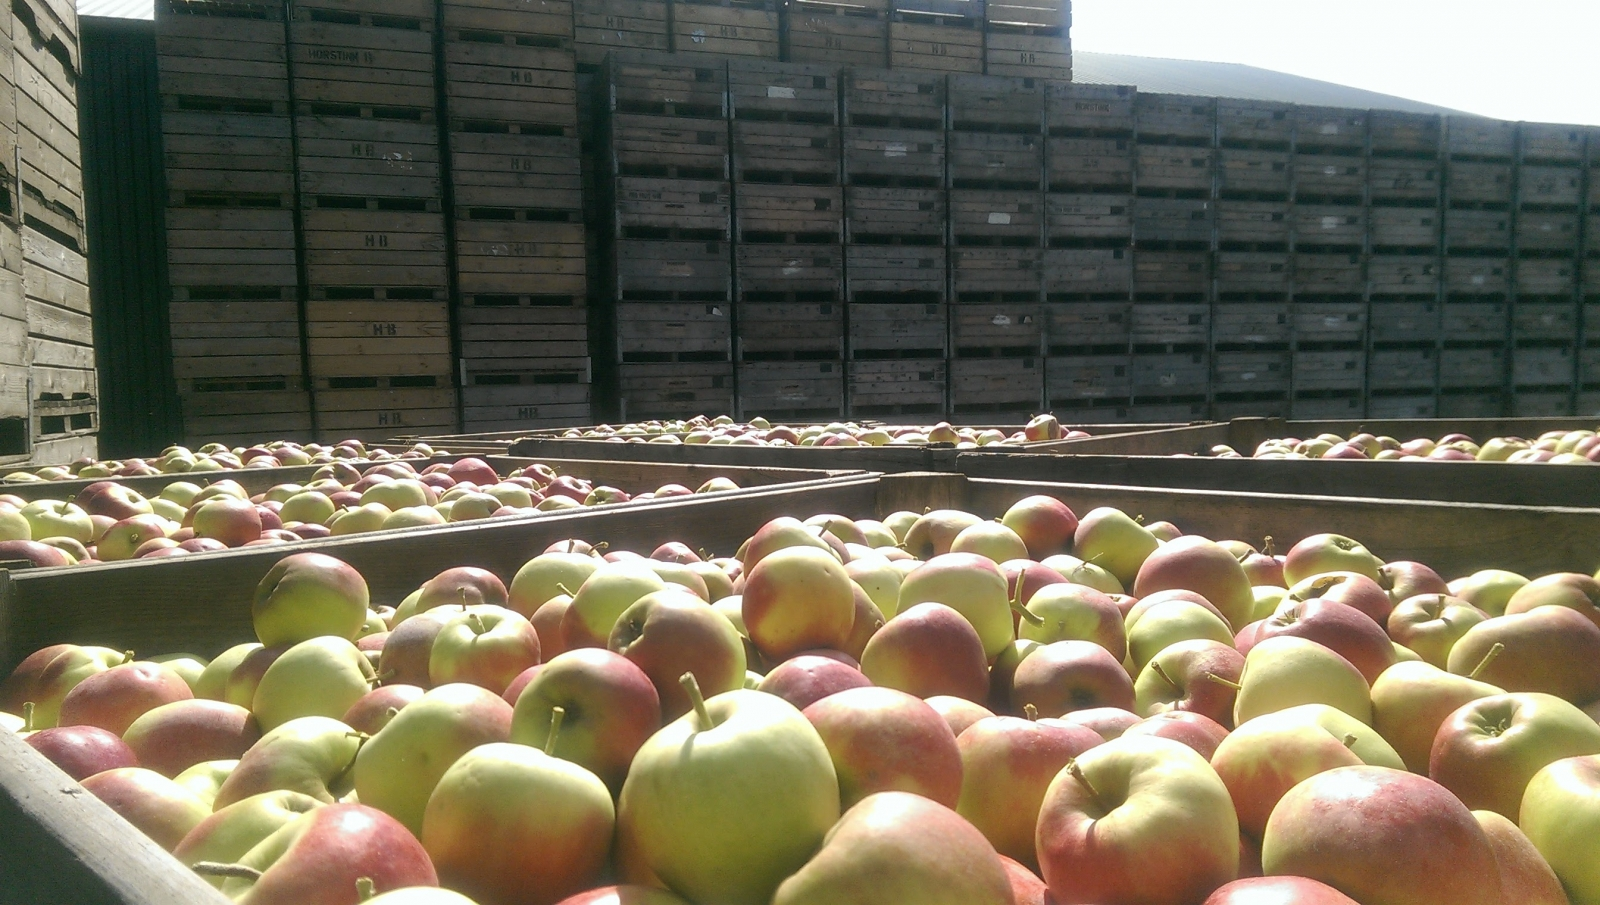 apples are stored, sometimes for months